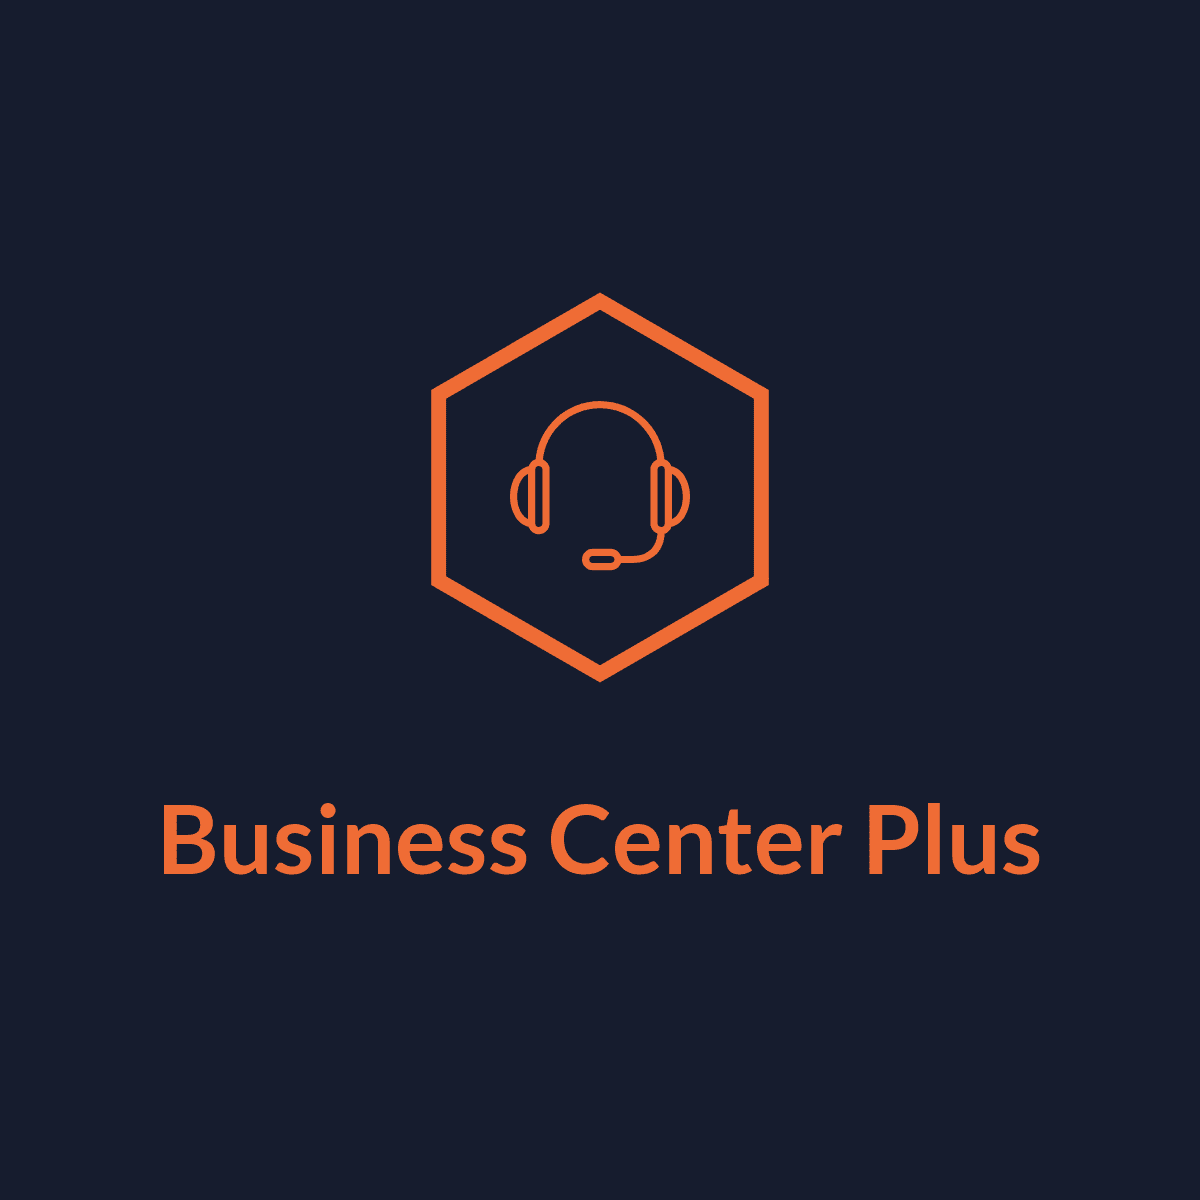 BUSINESS CENTER PLUS